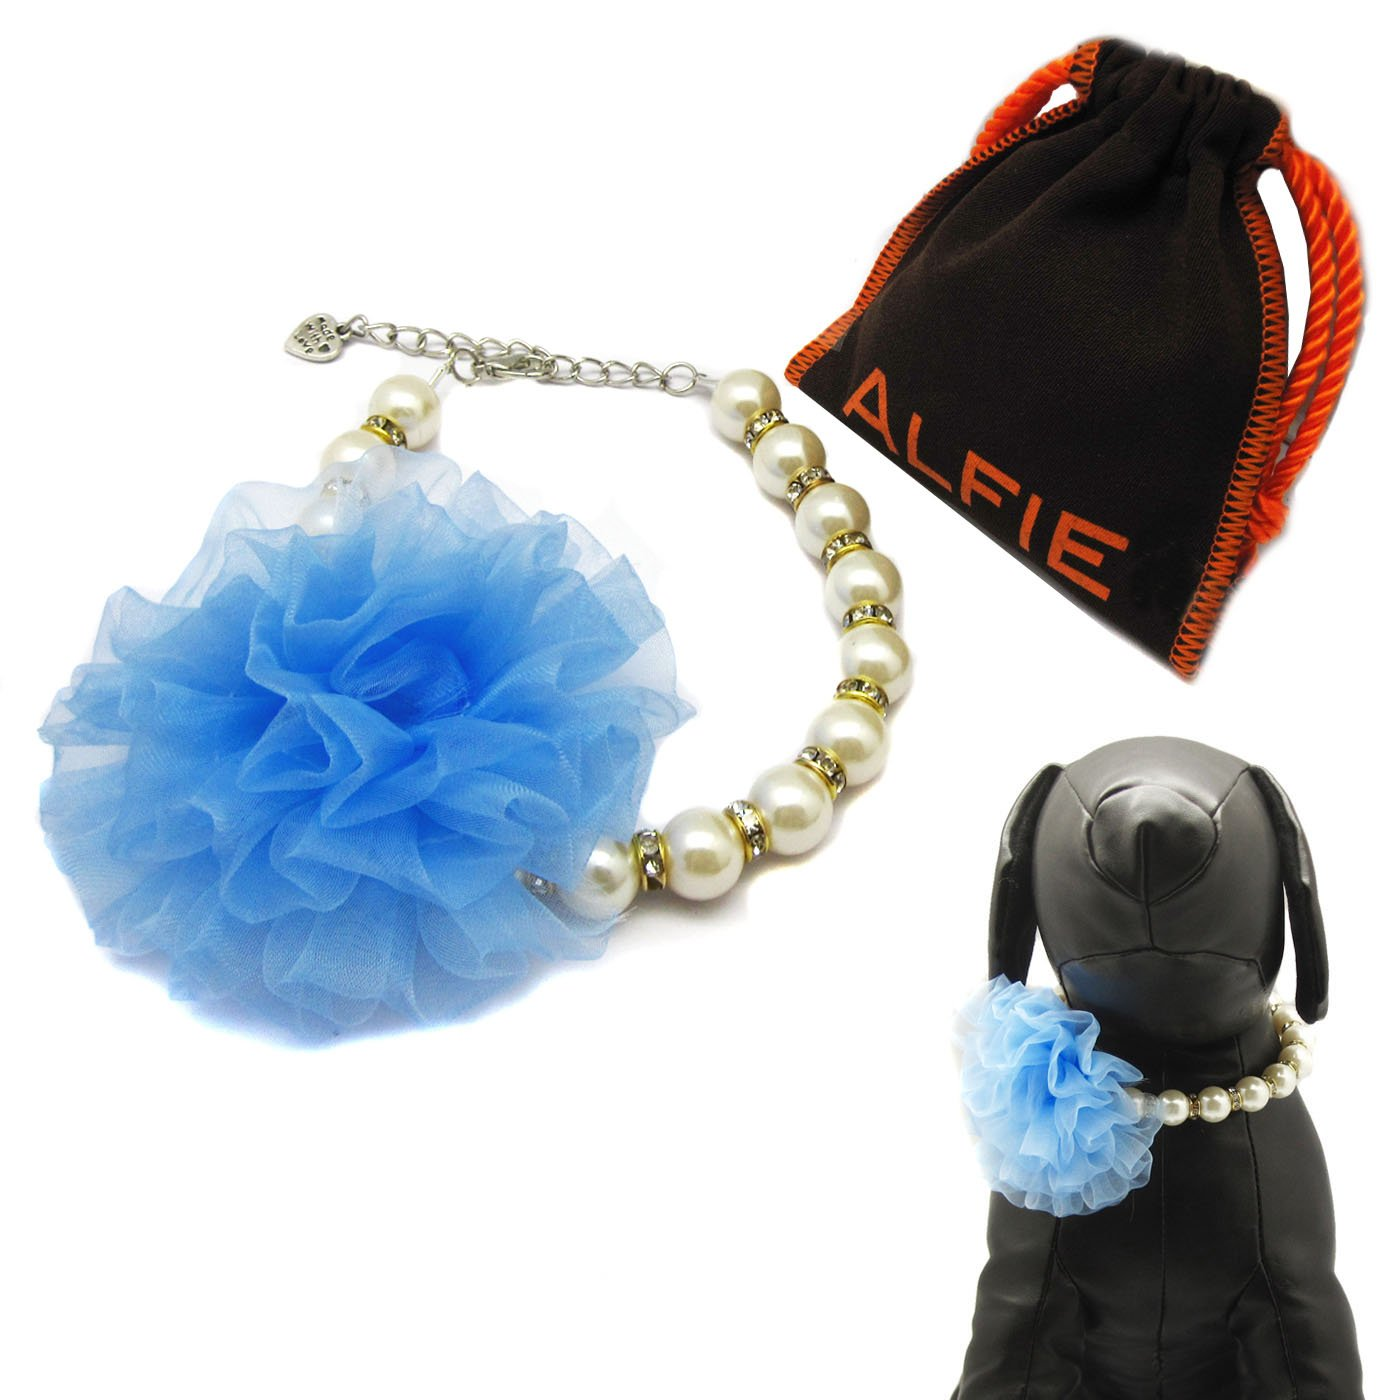 Alfie Pet by Petoga Couture - Parvani Floral Pearl Necklace for Dogs and Cats with Fabric Storage Bag, Color: Blue alfie and dad